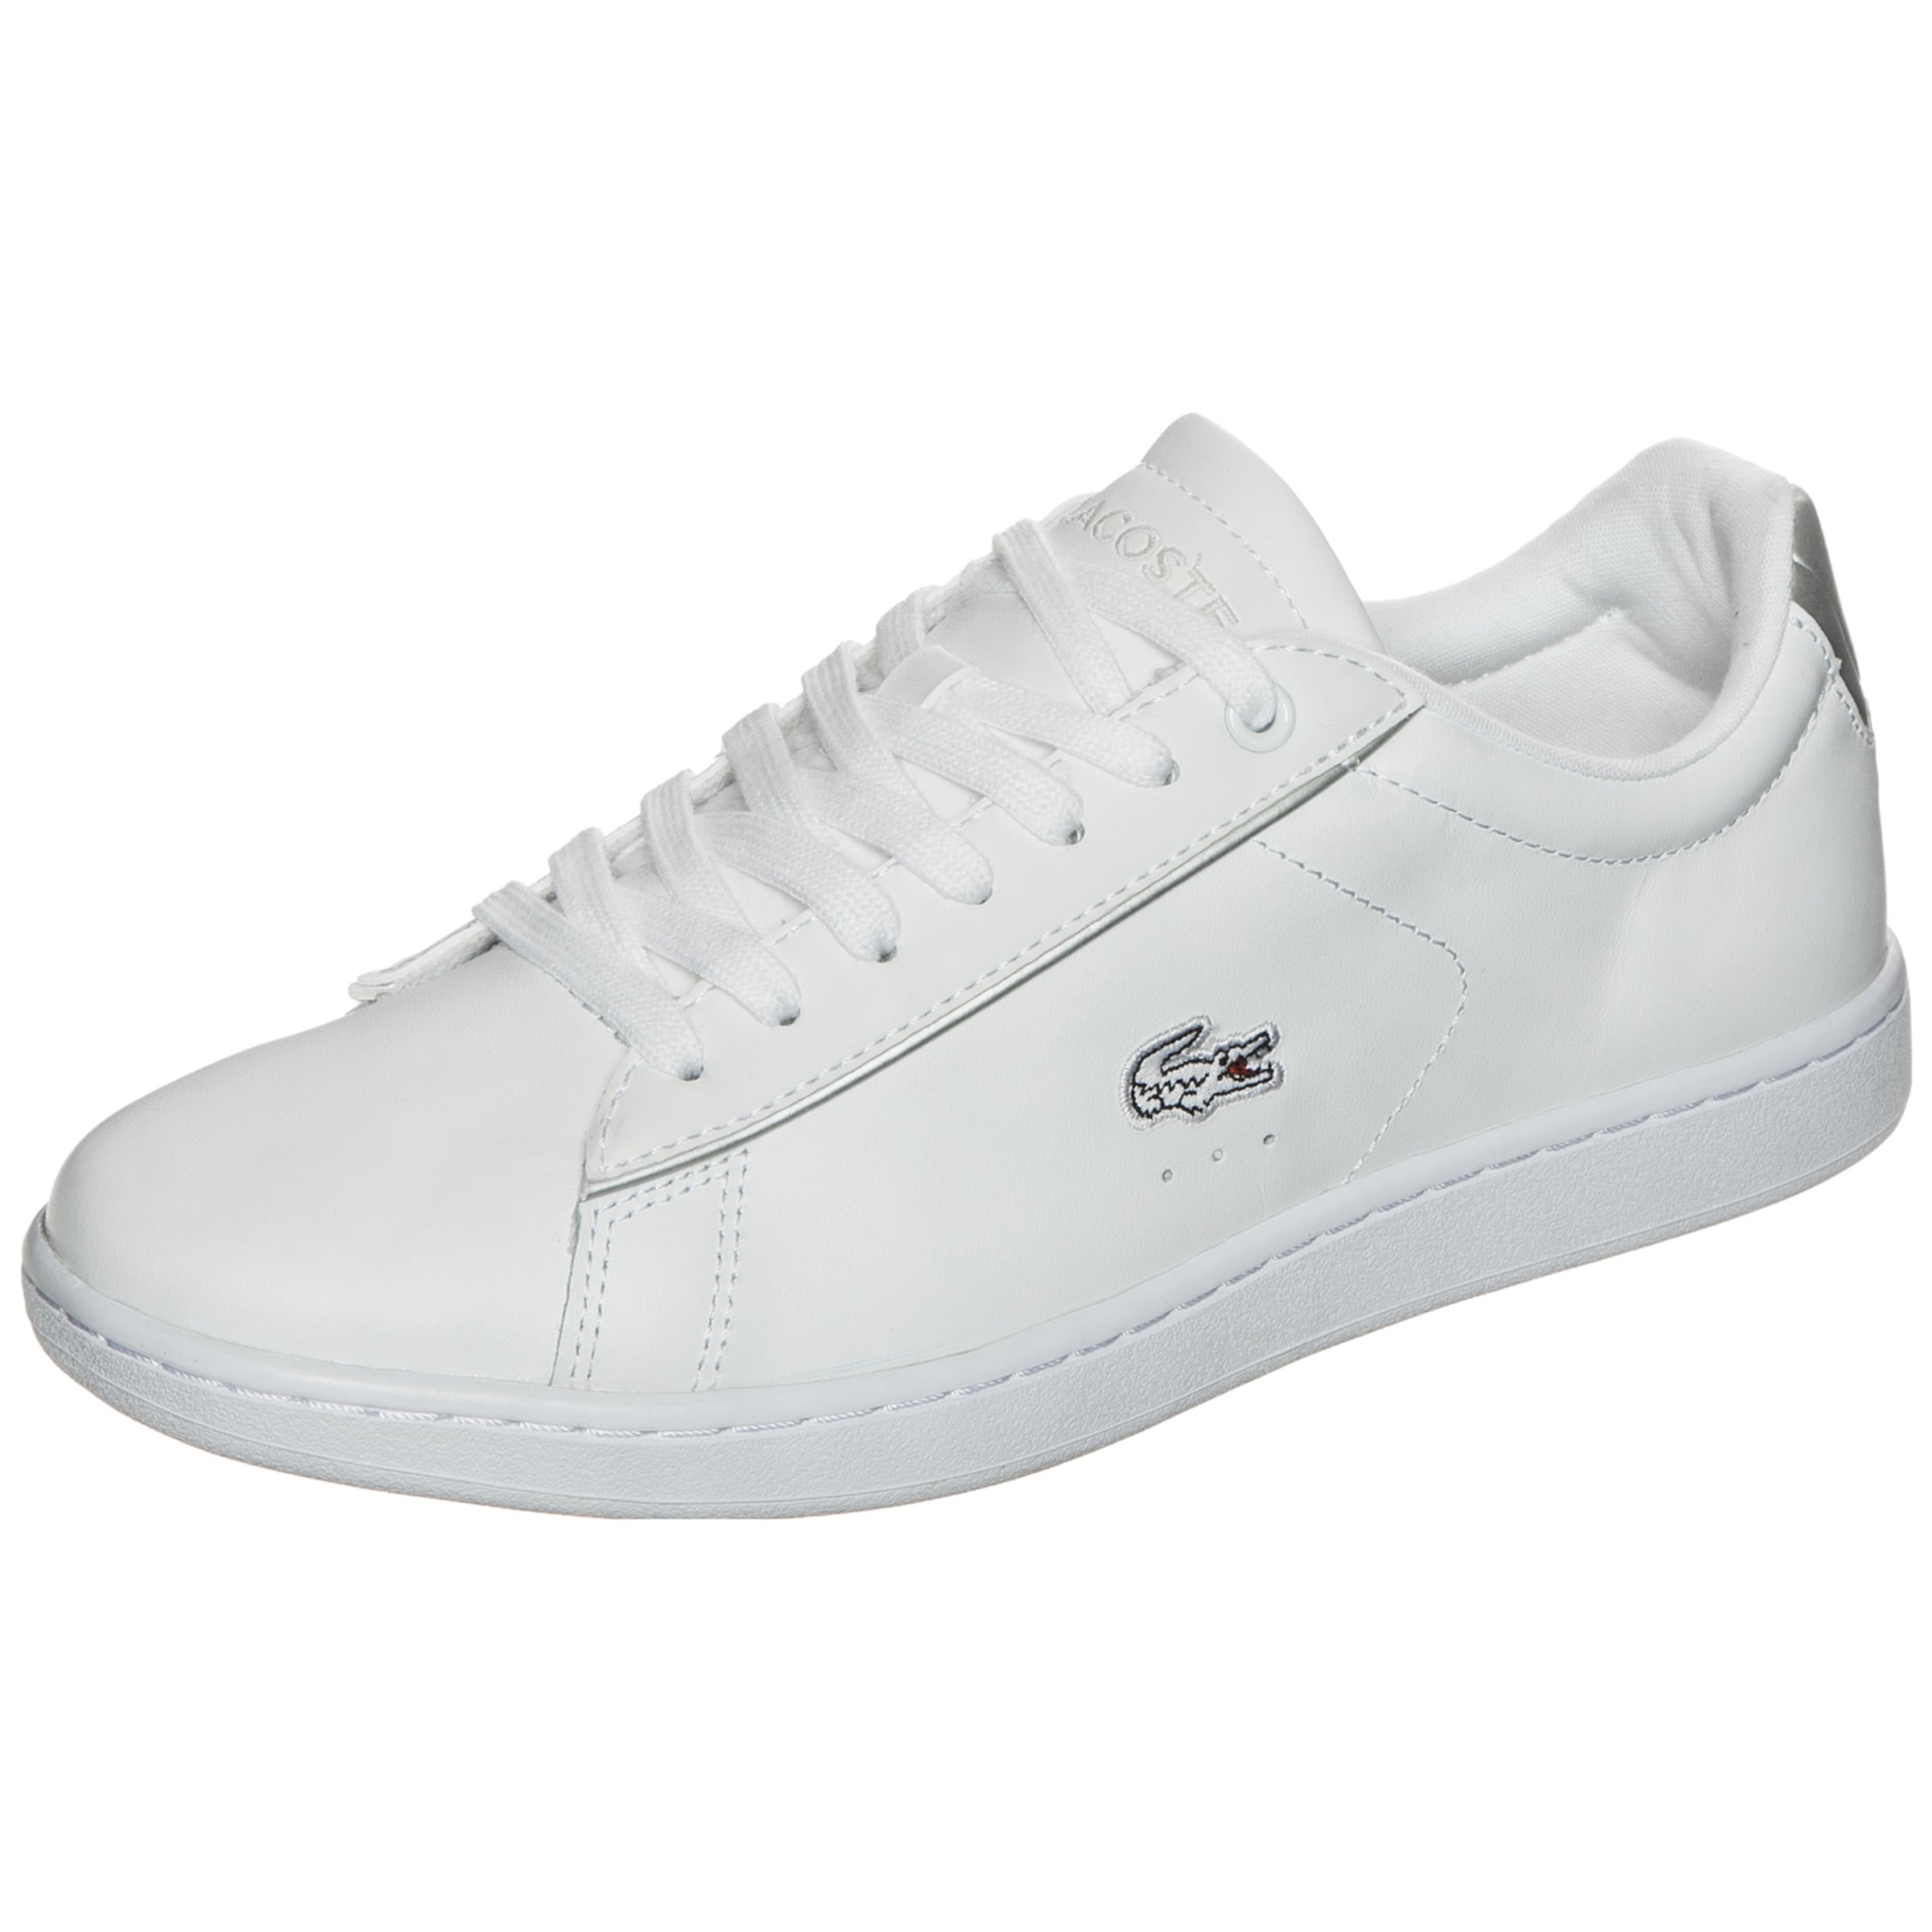 LACOSTE |  SPW CARNABY EVO 217 2 SPW  WHT/LT GRY  Sneakers 7dc324